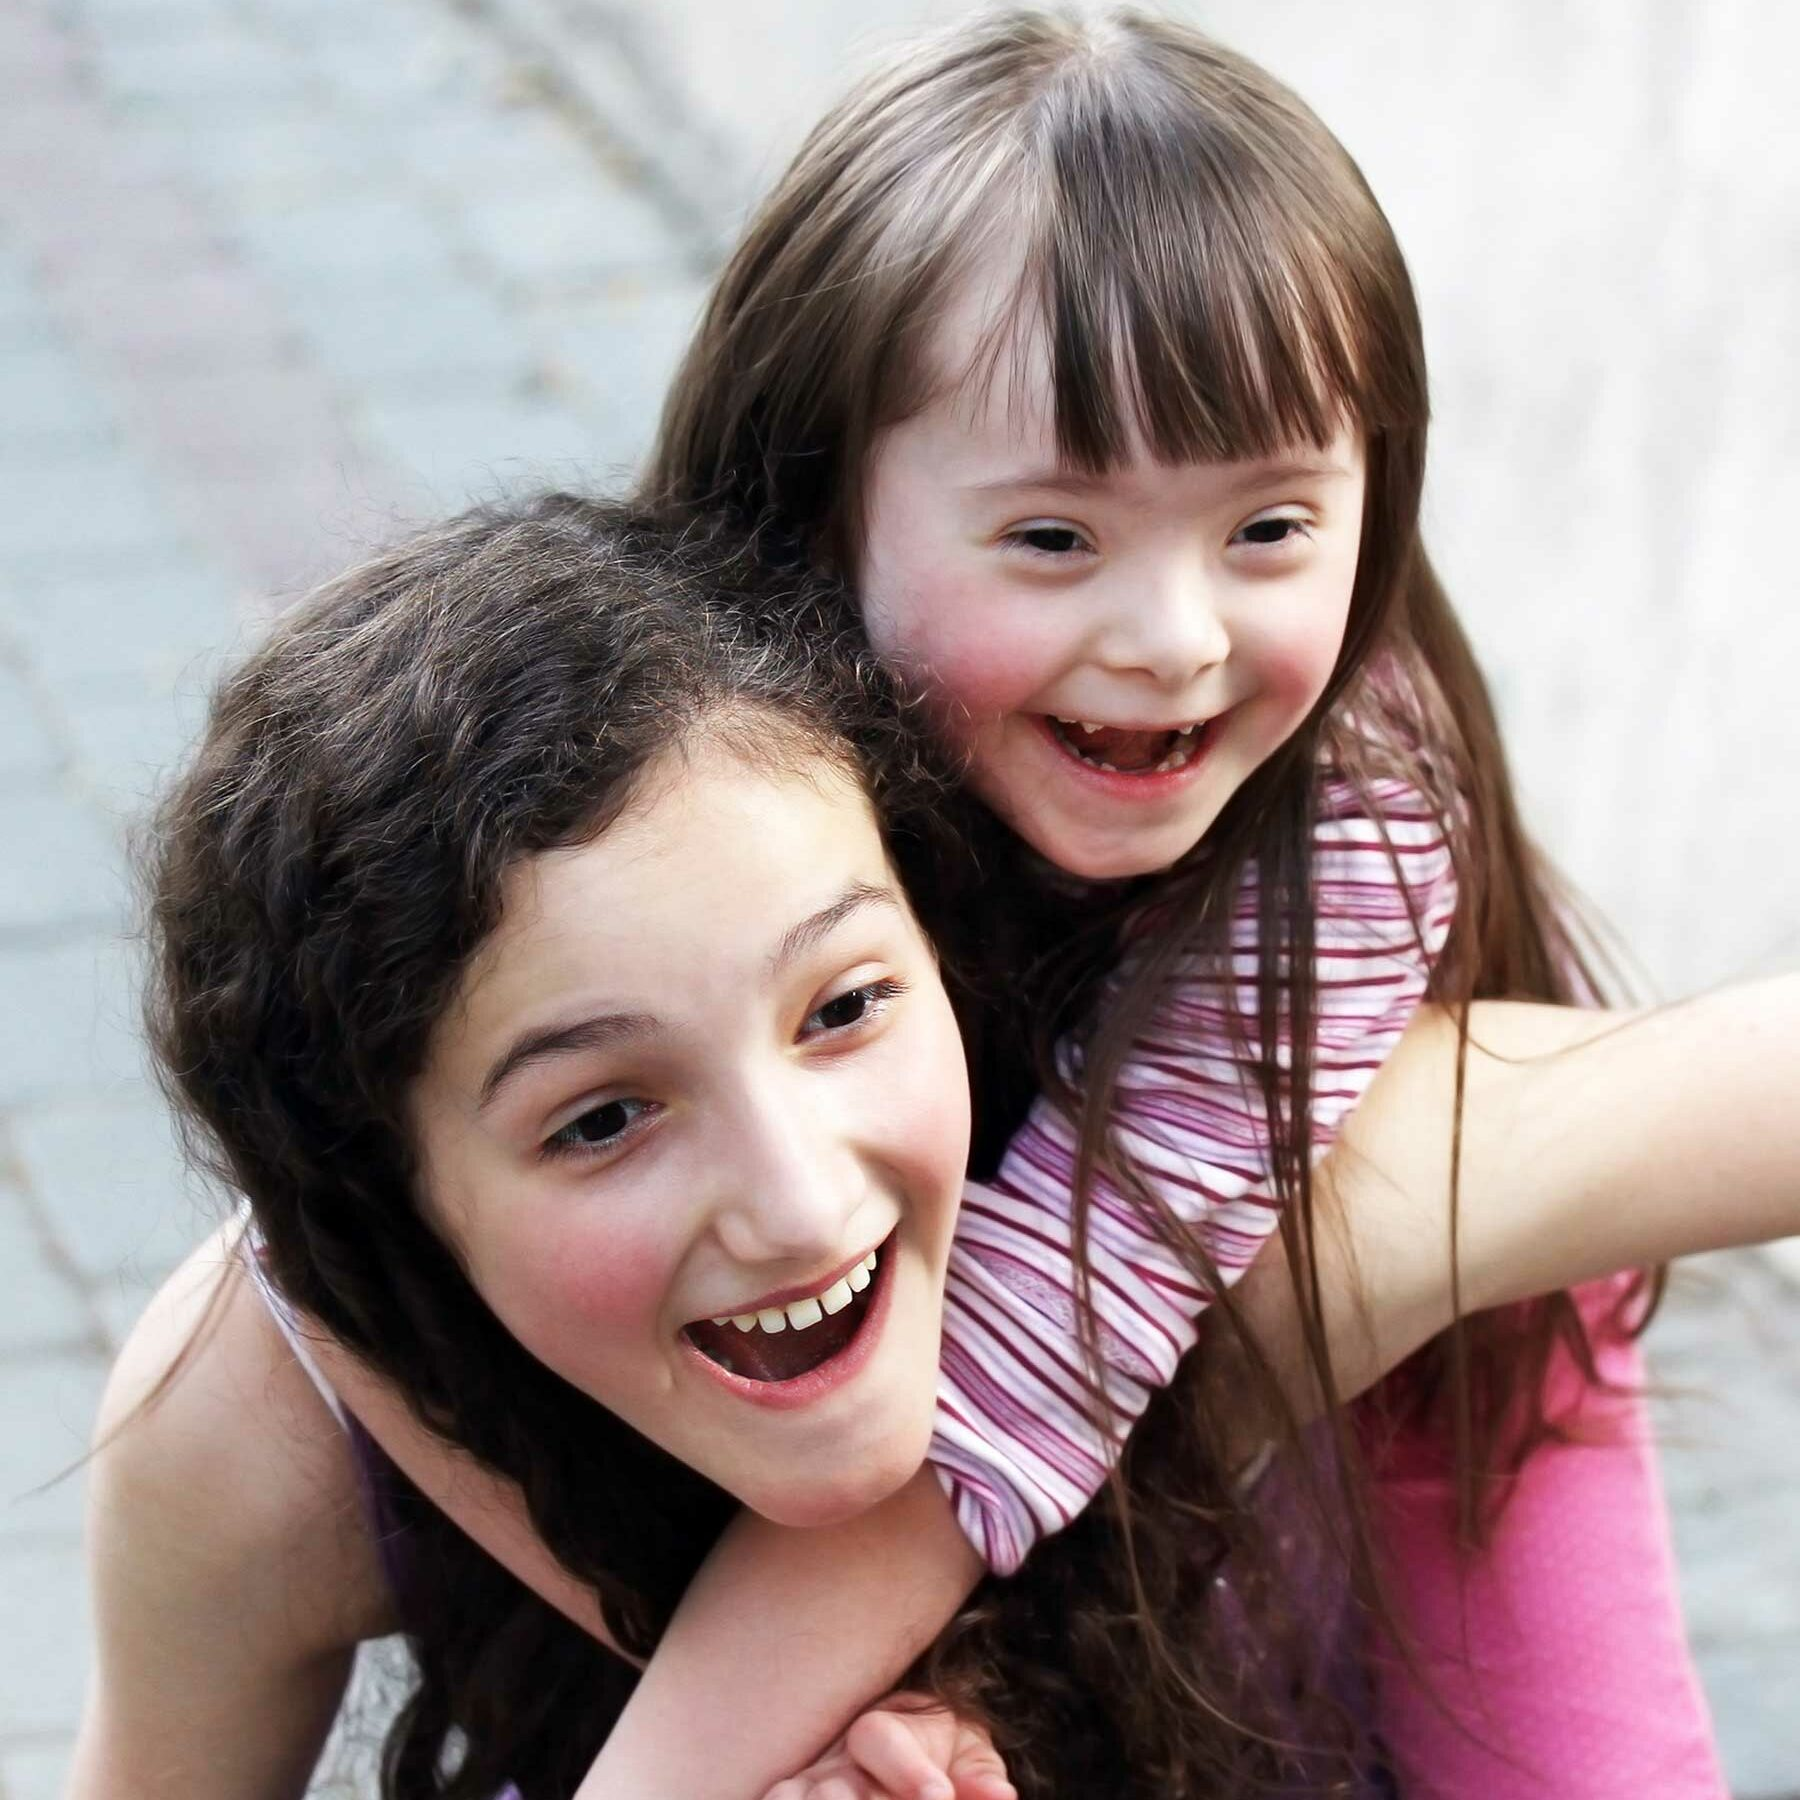 Two girls, one with Downs syndrome, playing